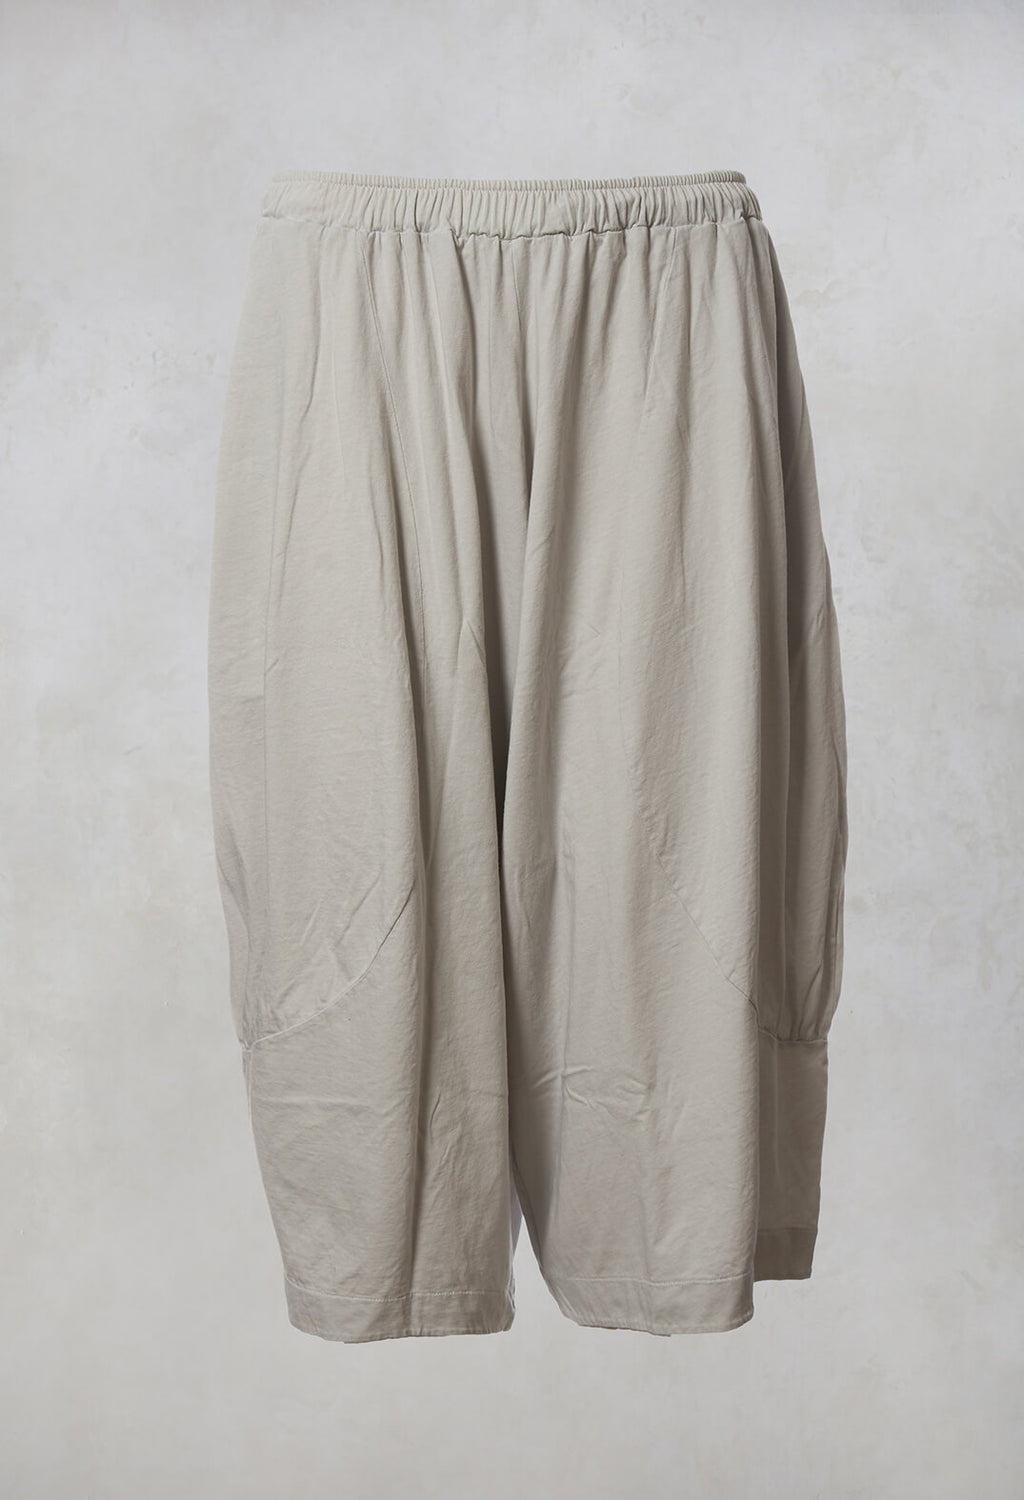 Linosa U Culottes in Pale